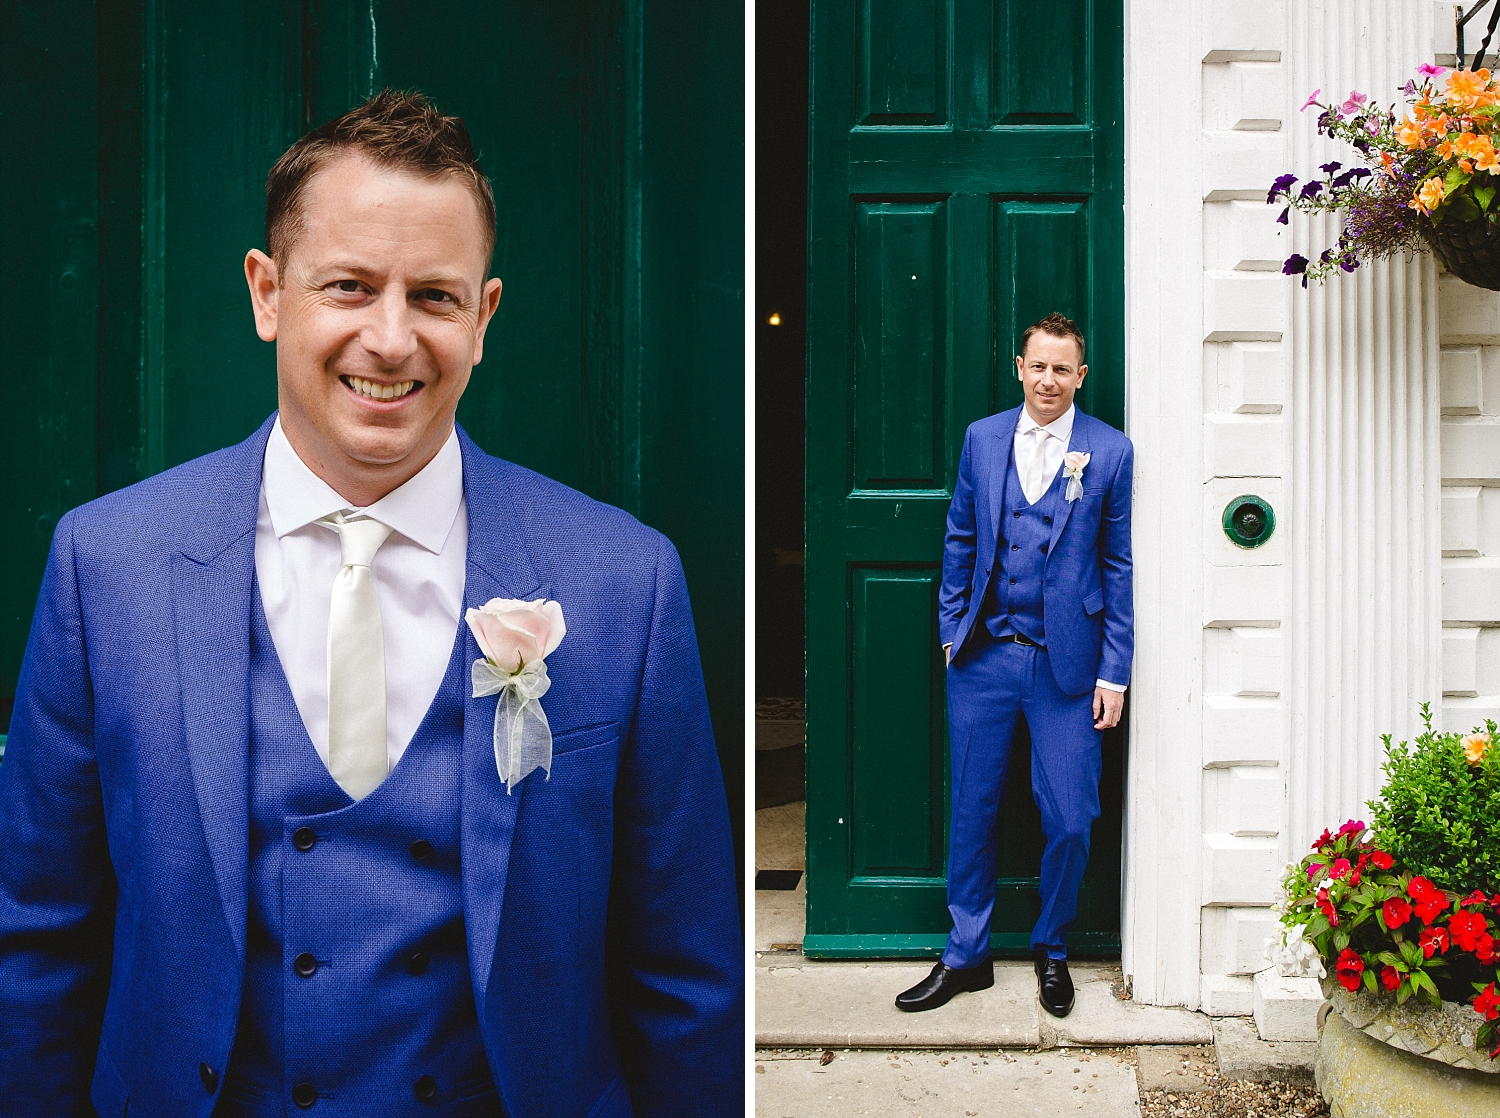 Gosfield Hall Essex Wedding - Groom's Party